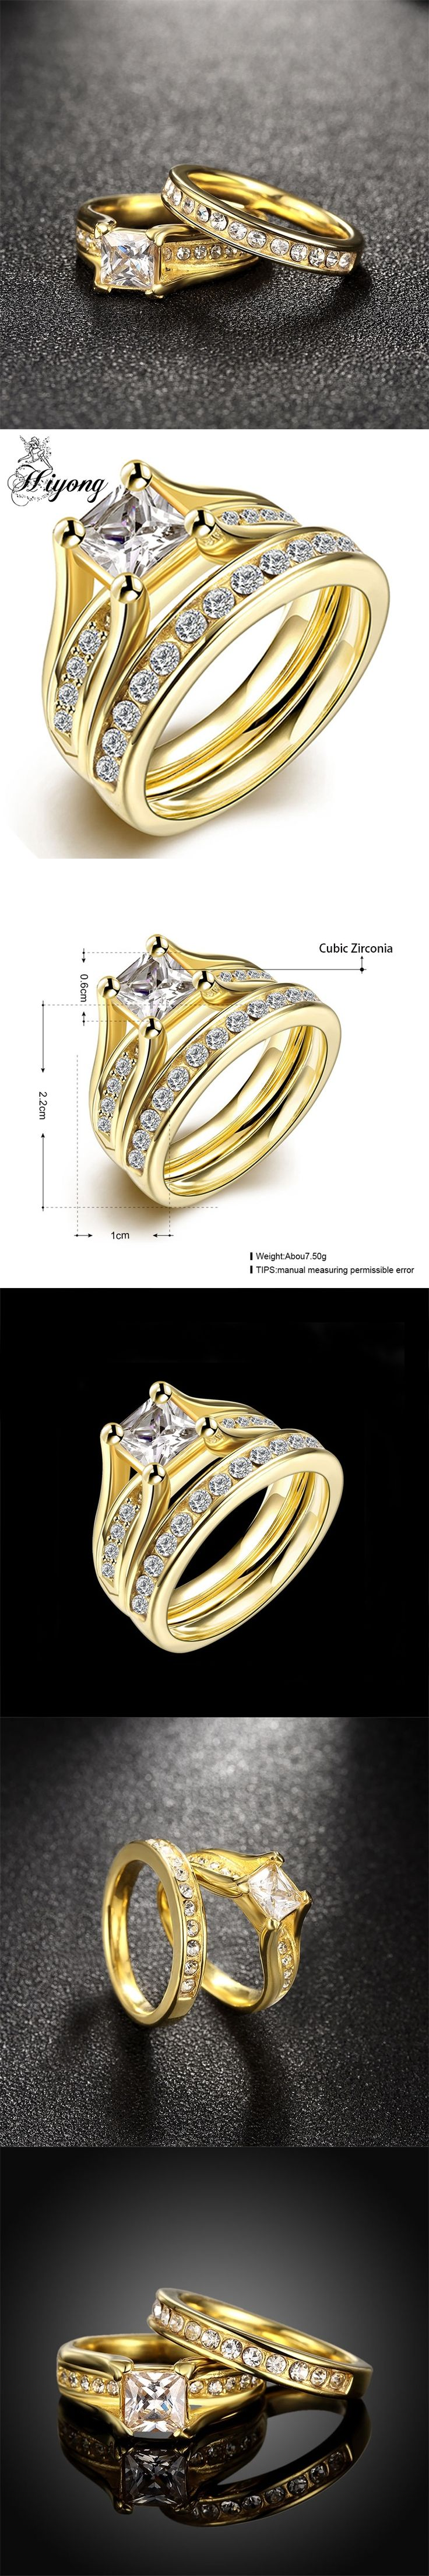 HIYONG Luxury Royal Nobility Wedding Set of Ring Nickle Free Stainless Steel Channel Setting AAA CZ Matching Bridal Wedding Ring